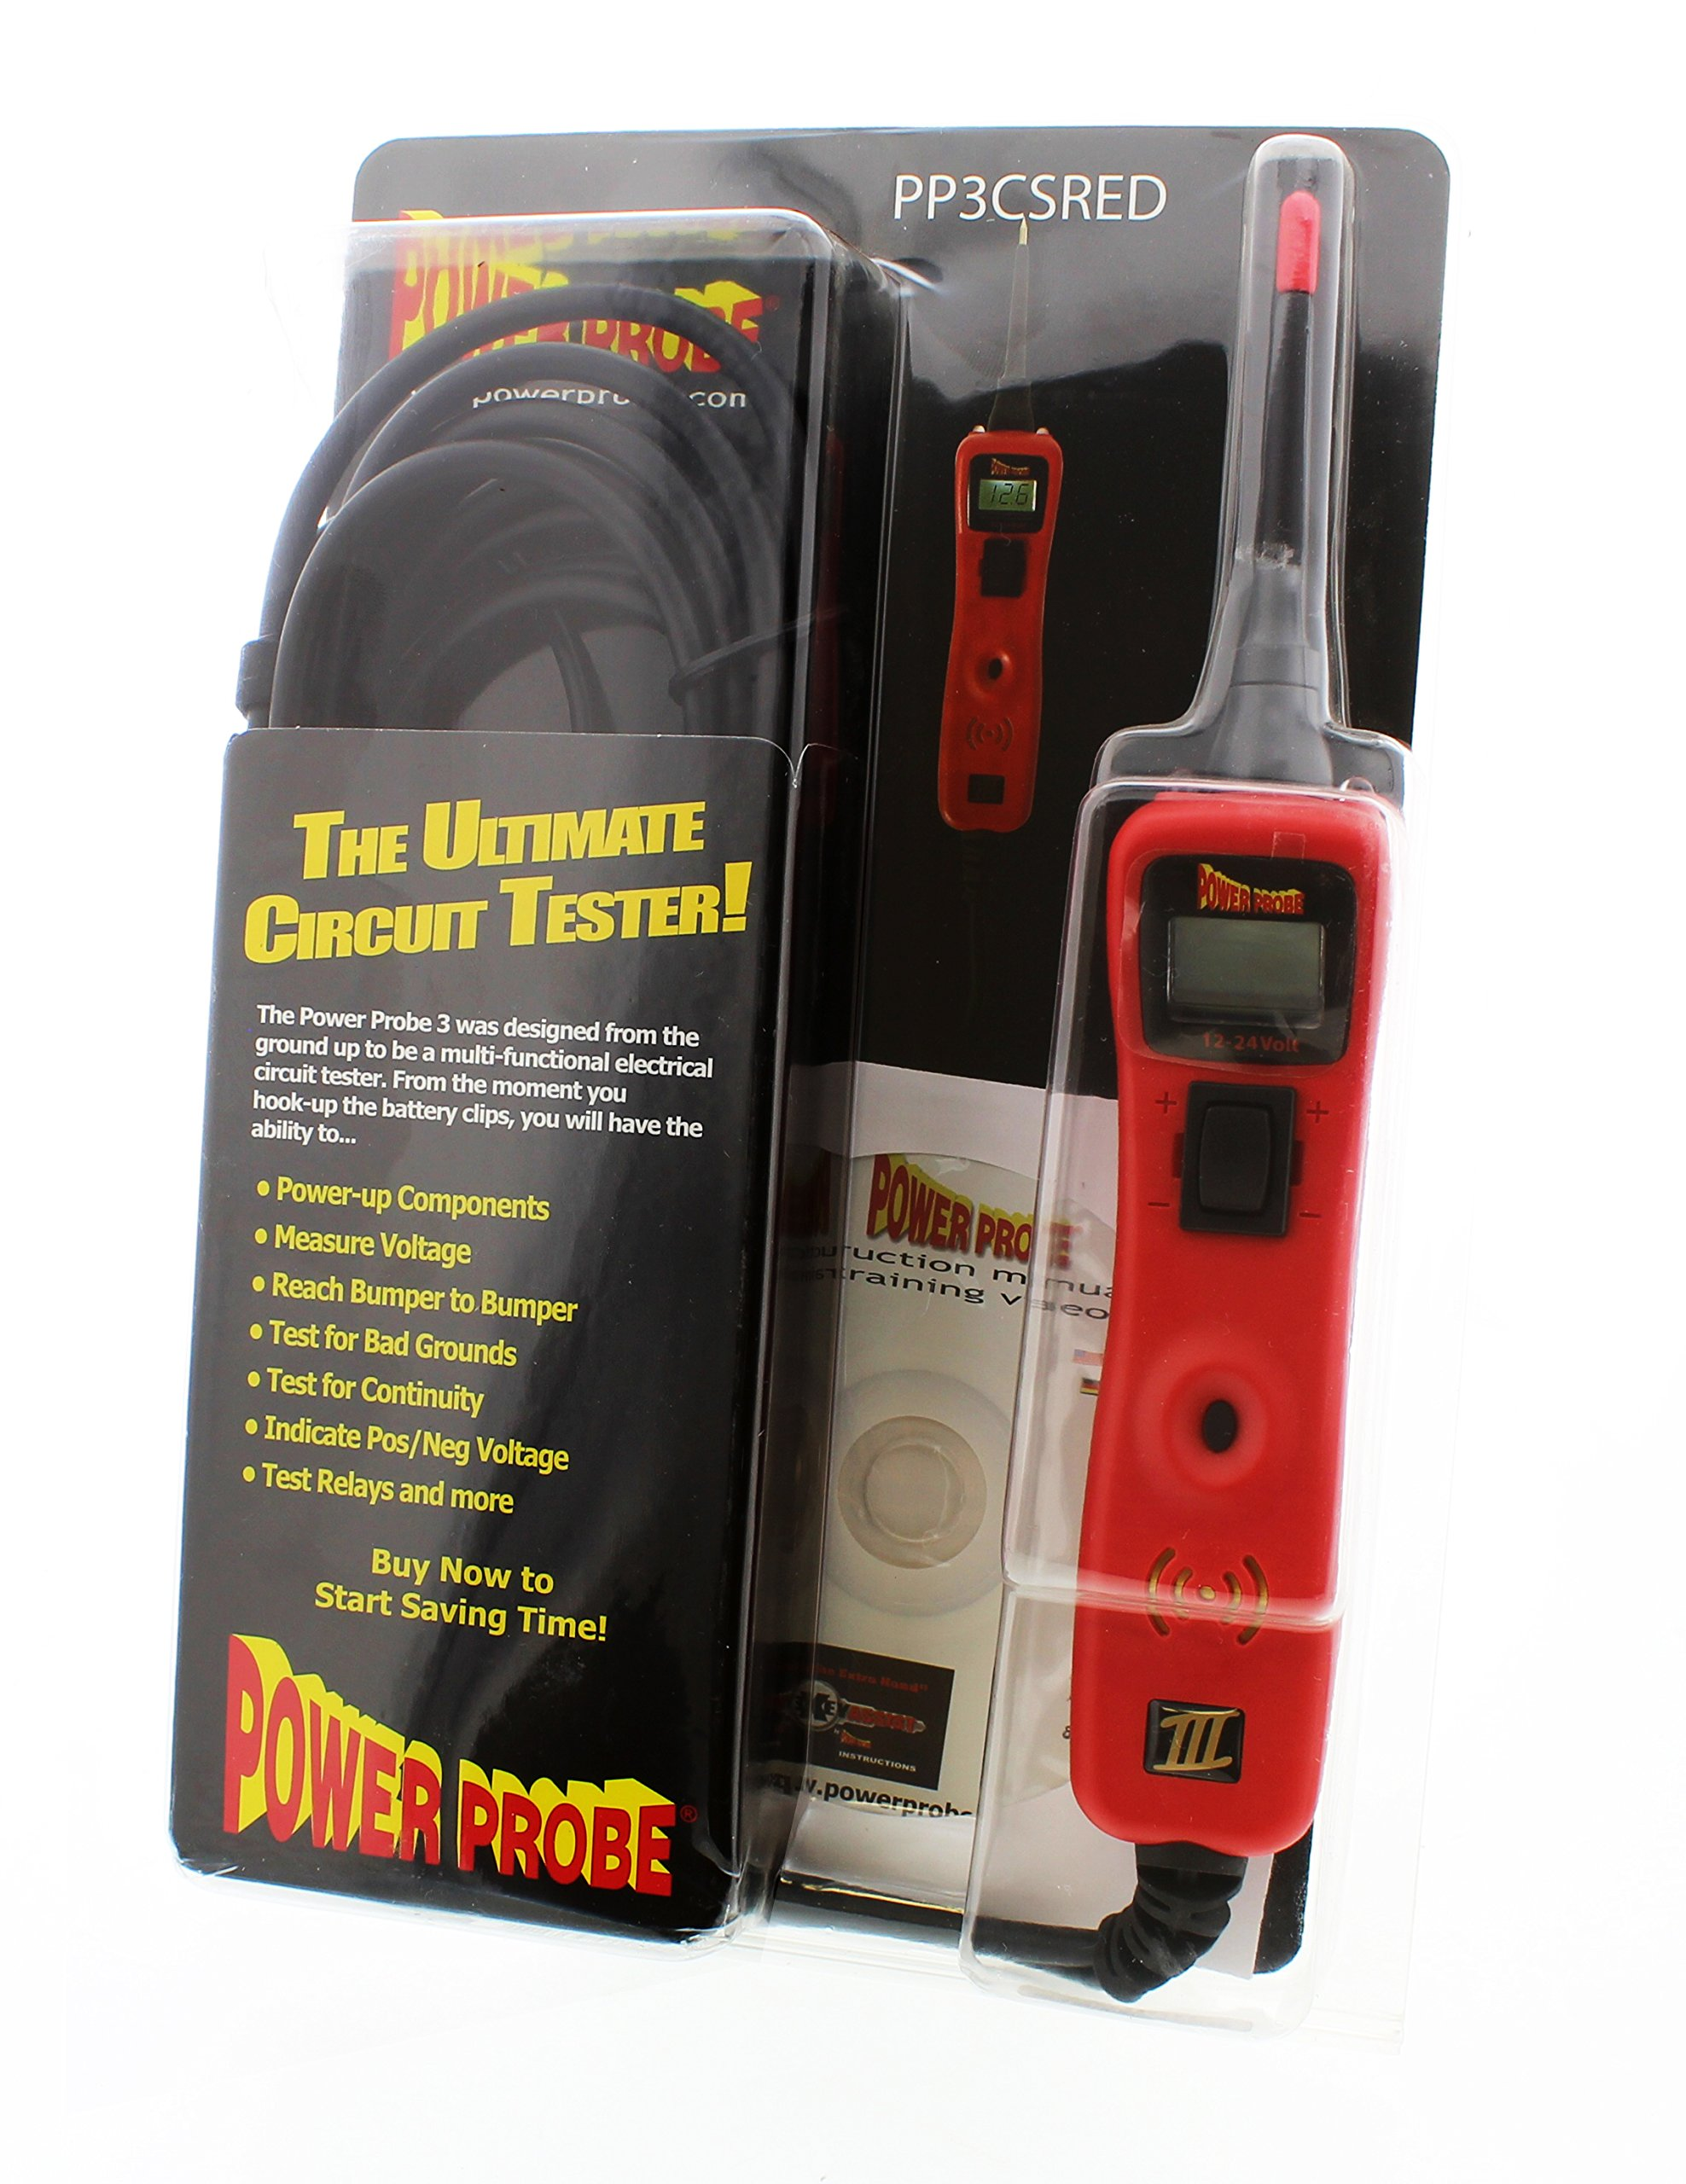 Power Probe III Clamshell - Red (PP3CSRED) [Car Automotive Diagnostic Test Tool, Digital Volt Meter, AC/DC Current Resistance, Circuit Tester] by Power Probe